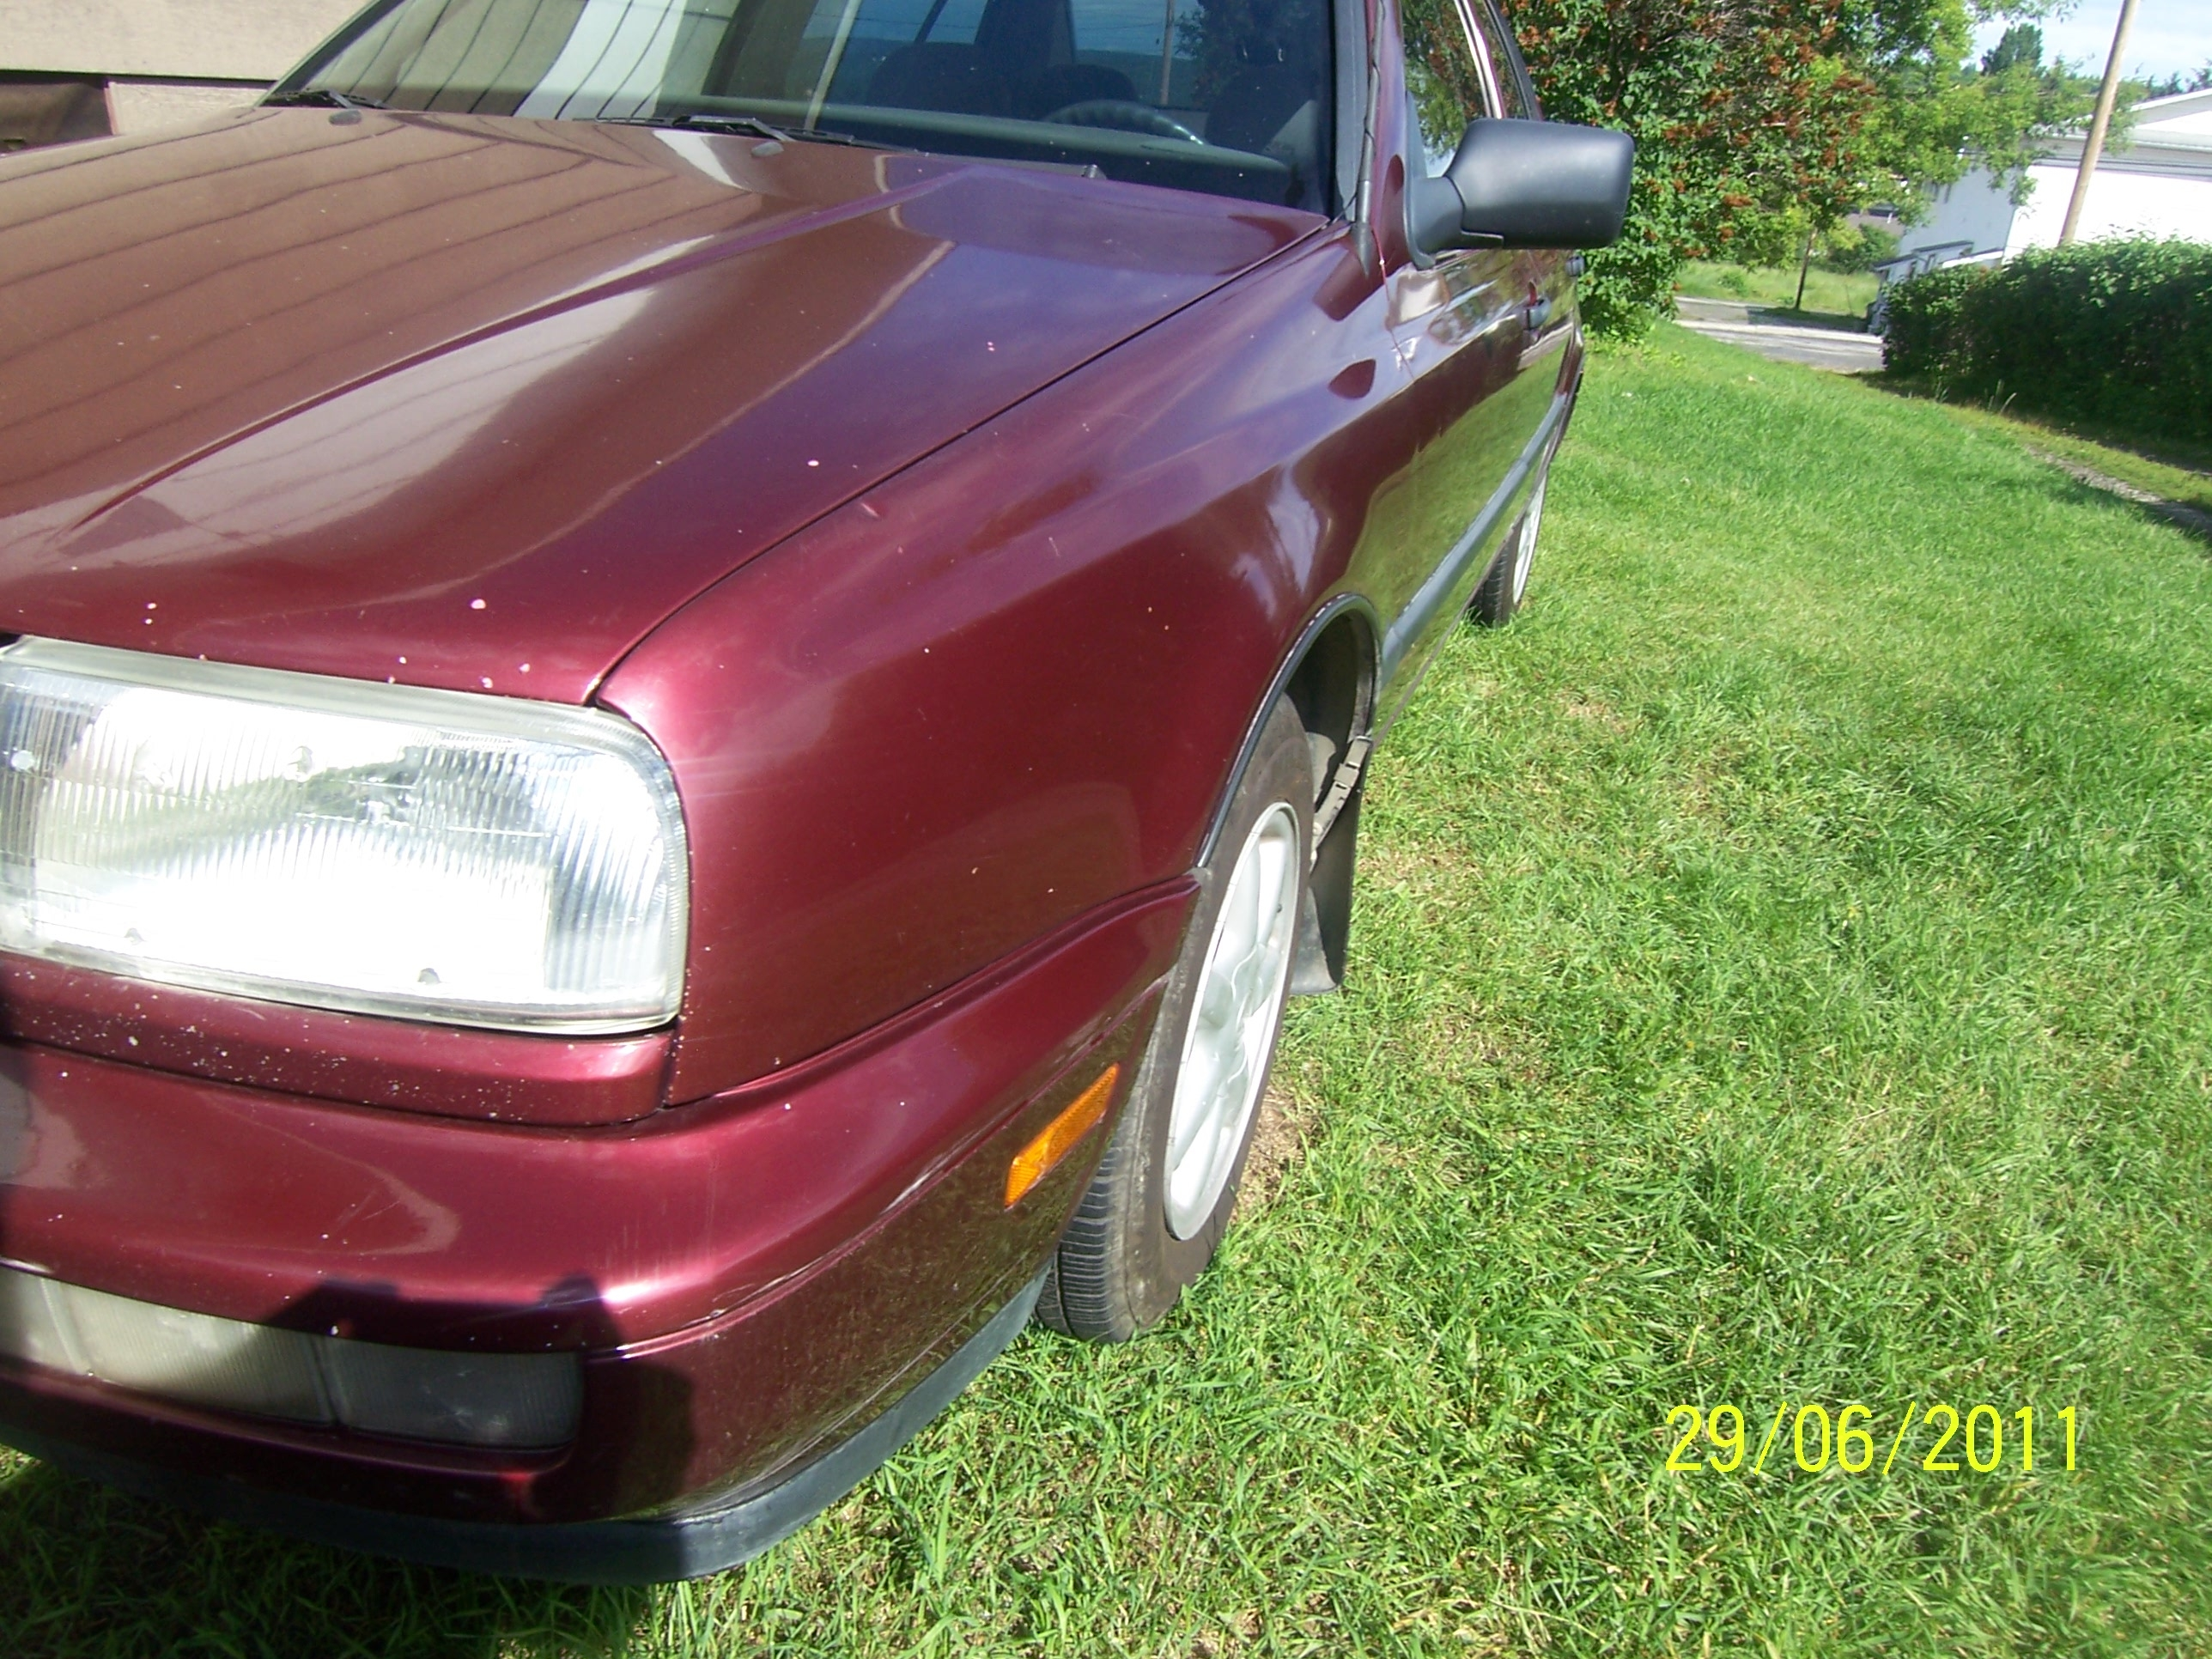 Another Z24meandu 1994 Volkswagen Jetta III post... - 15187316